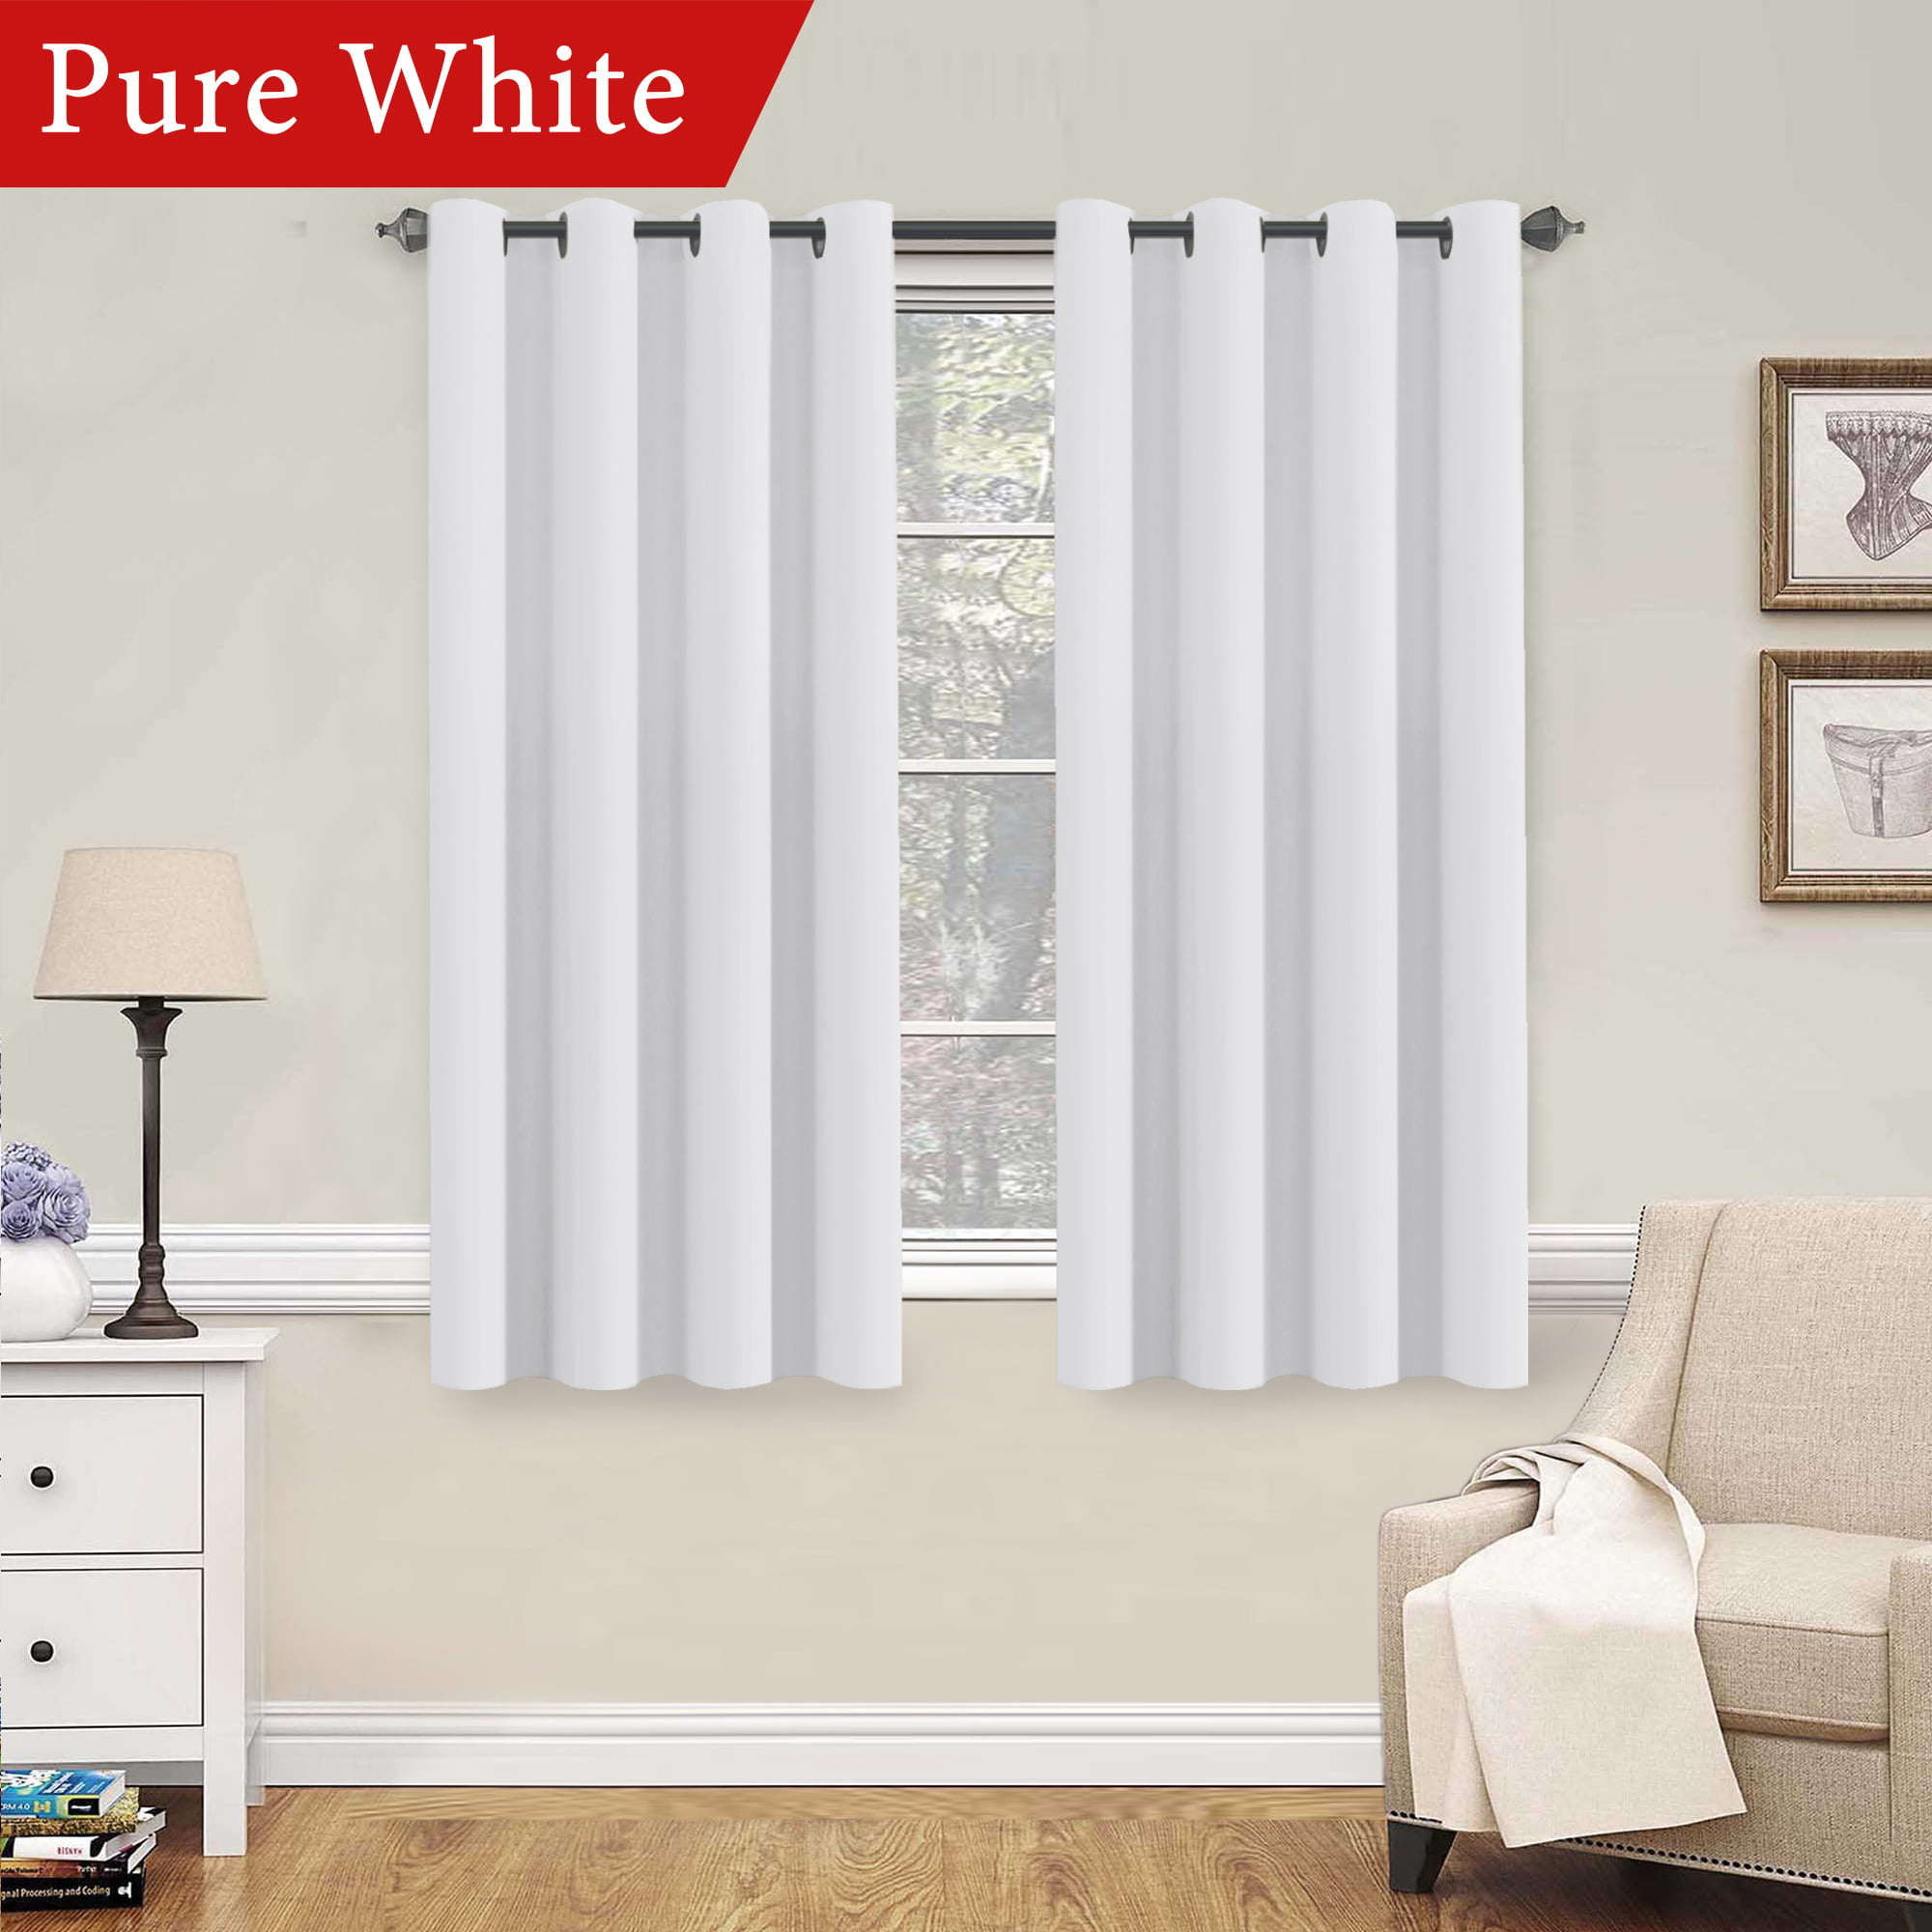 H.VERSAILTEX Pure White Curtains 63 Inch Length Window